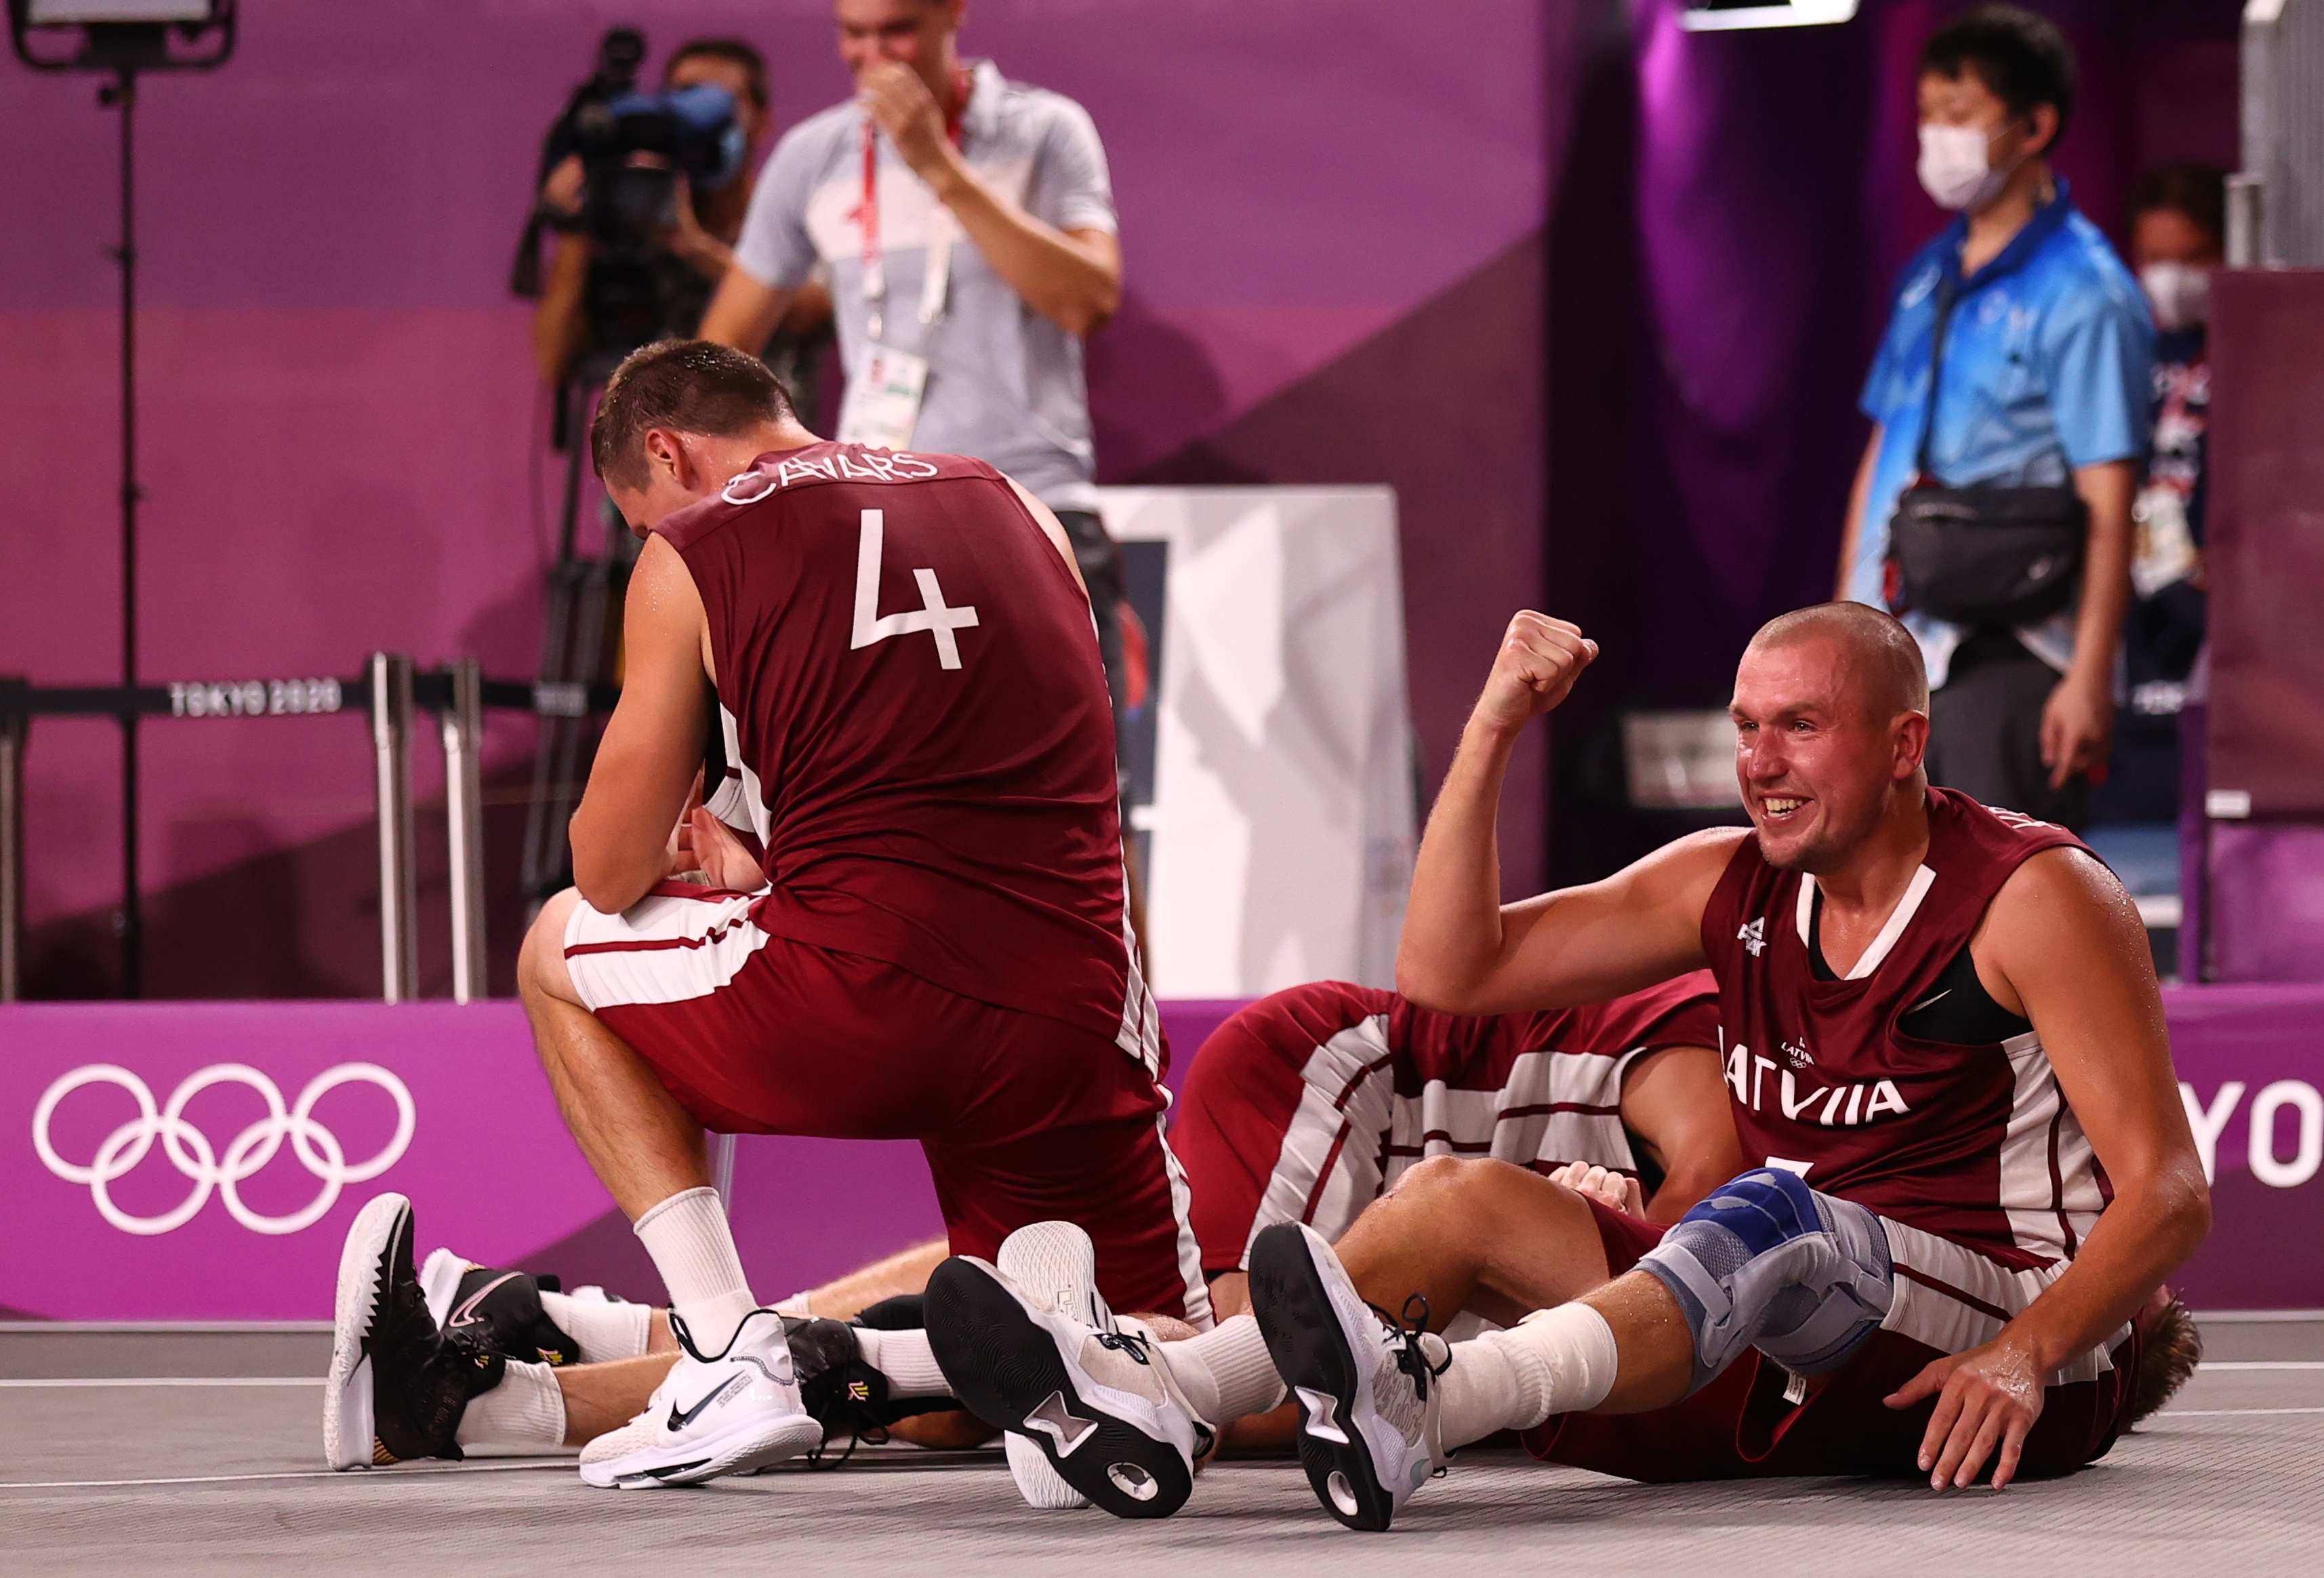 Tokyo 2020 Olympics - Basketball 3x3 - Men - Finals - The Russian Olympic Committee v Latvia - Aomi Urban Sports Park, Tokyo Japan - July 28, 2021. Players of Latvia celebrate victory after the match. REUTERS/Andrew Boyers